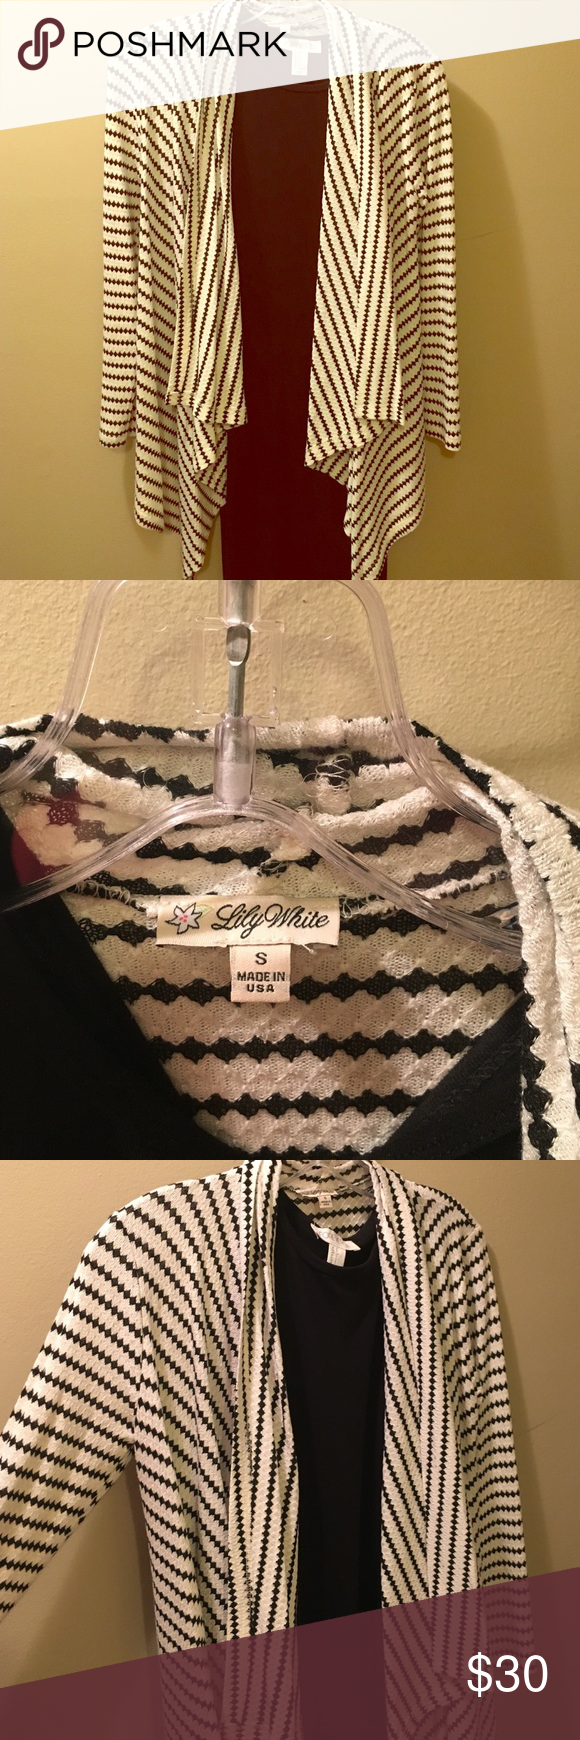 Open and flows sweater Lily White black and cream diamond strip design open and float sweater! This sweater is super fun and coZy! It's pretty lightweight and perfect for the temperature changes! Worn once! Lily White Sweaters Cardigans